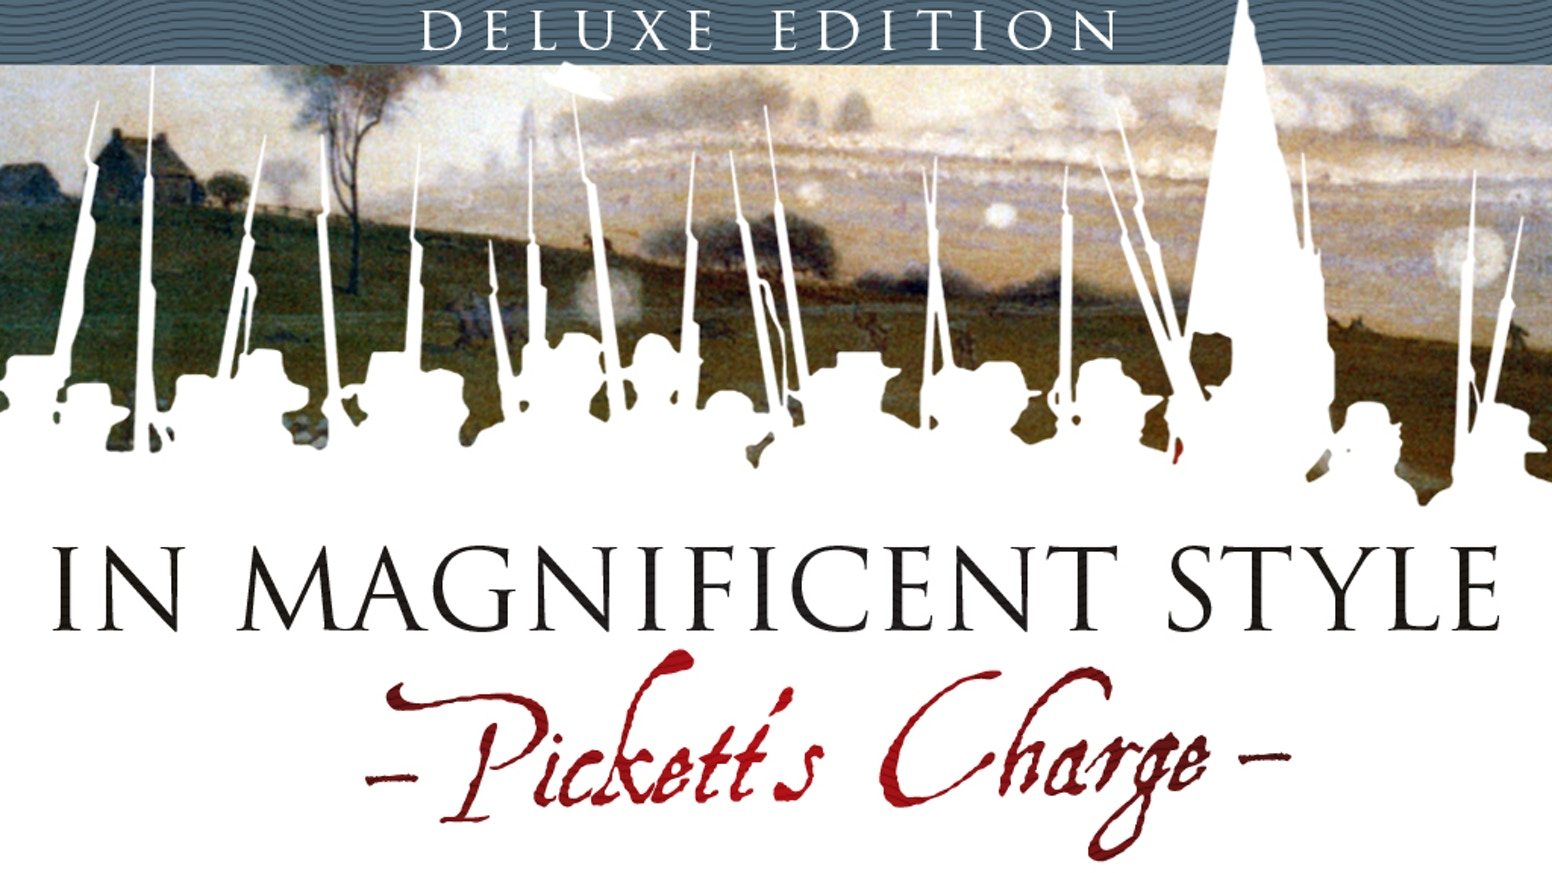 The deluxe edition and update of the classic Solitaire game, IN MAGNIFICENT STYLE.  Refight Picketts Charge at Gettysburg.